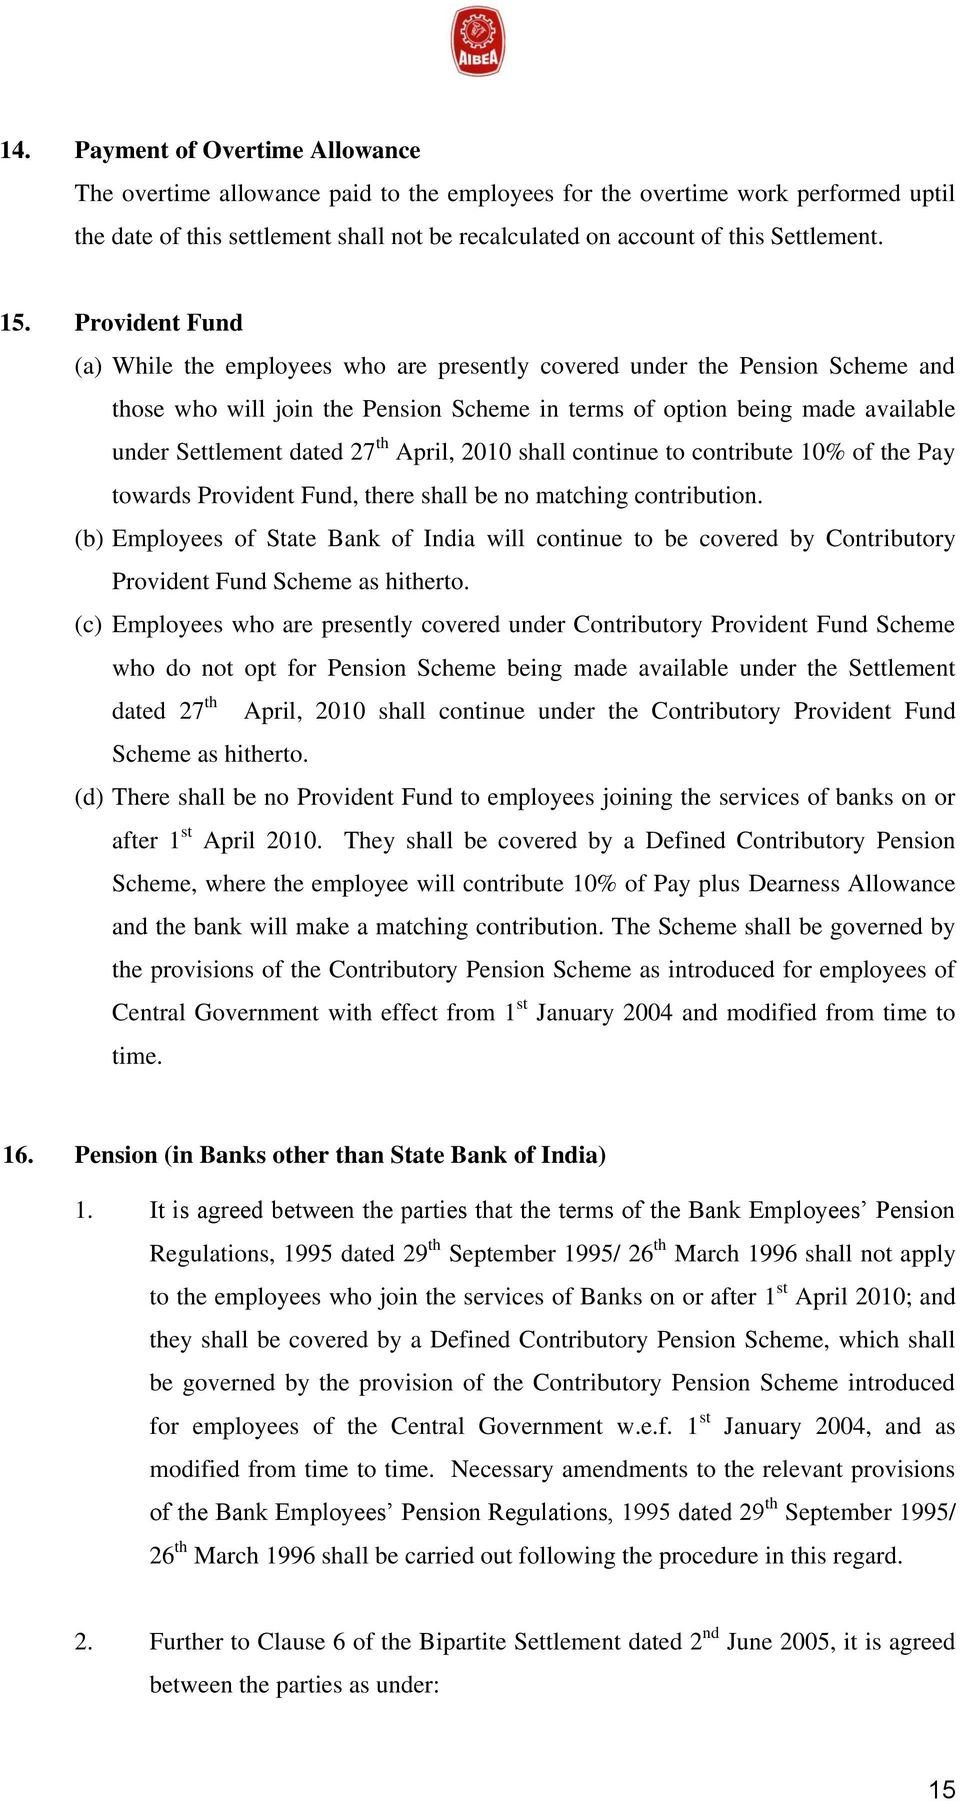 Provident Fund (a) While the employees who are presently covered under the Pension Scheme and those who will join the Pension Scheme in terms of option being made available under Settlement dated 27